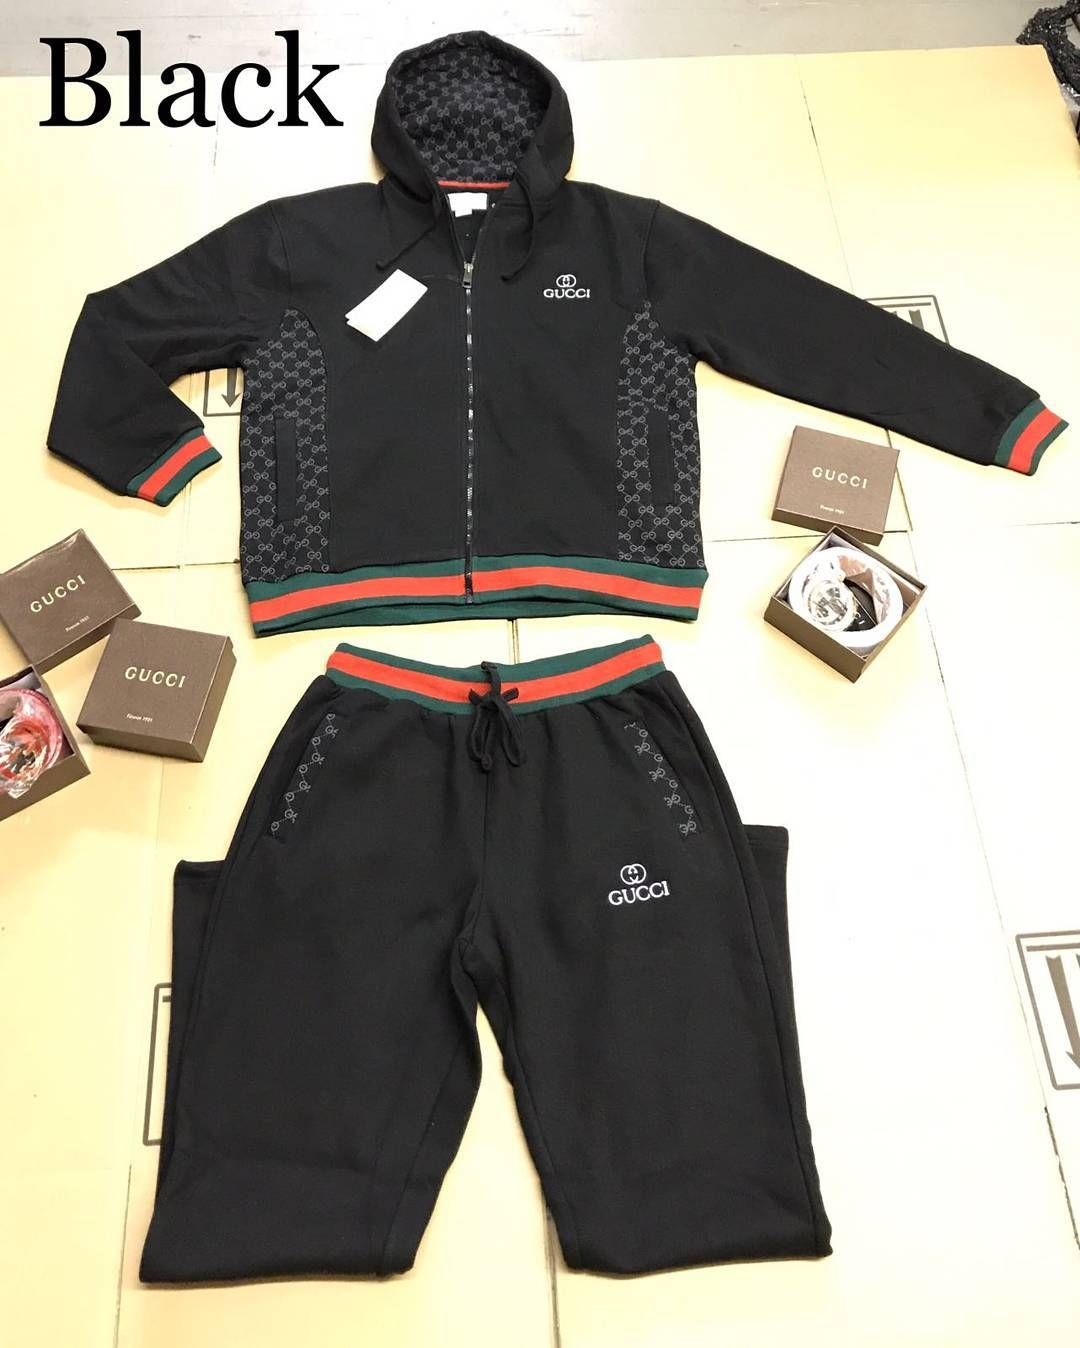 6ea9cd156 MEN S GUCCI JOGGING SUIT  125 SIZES MED-3XL